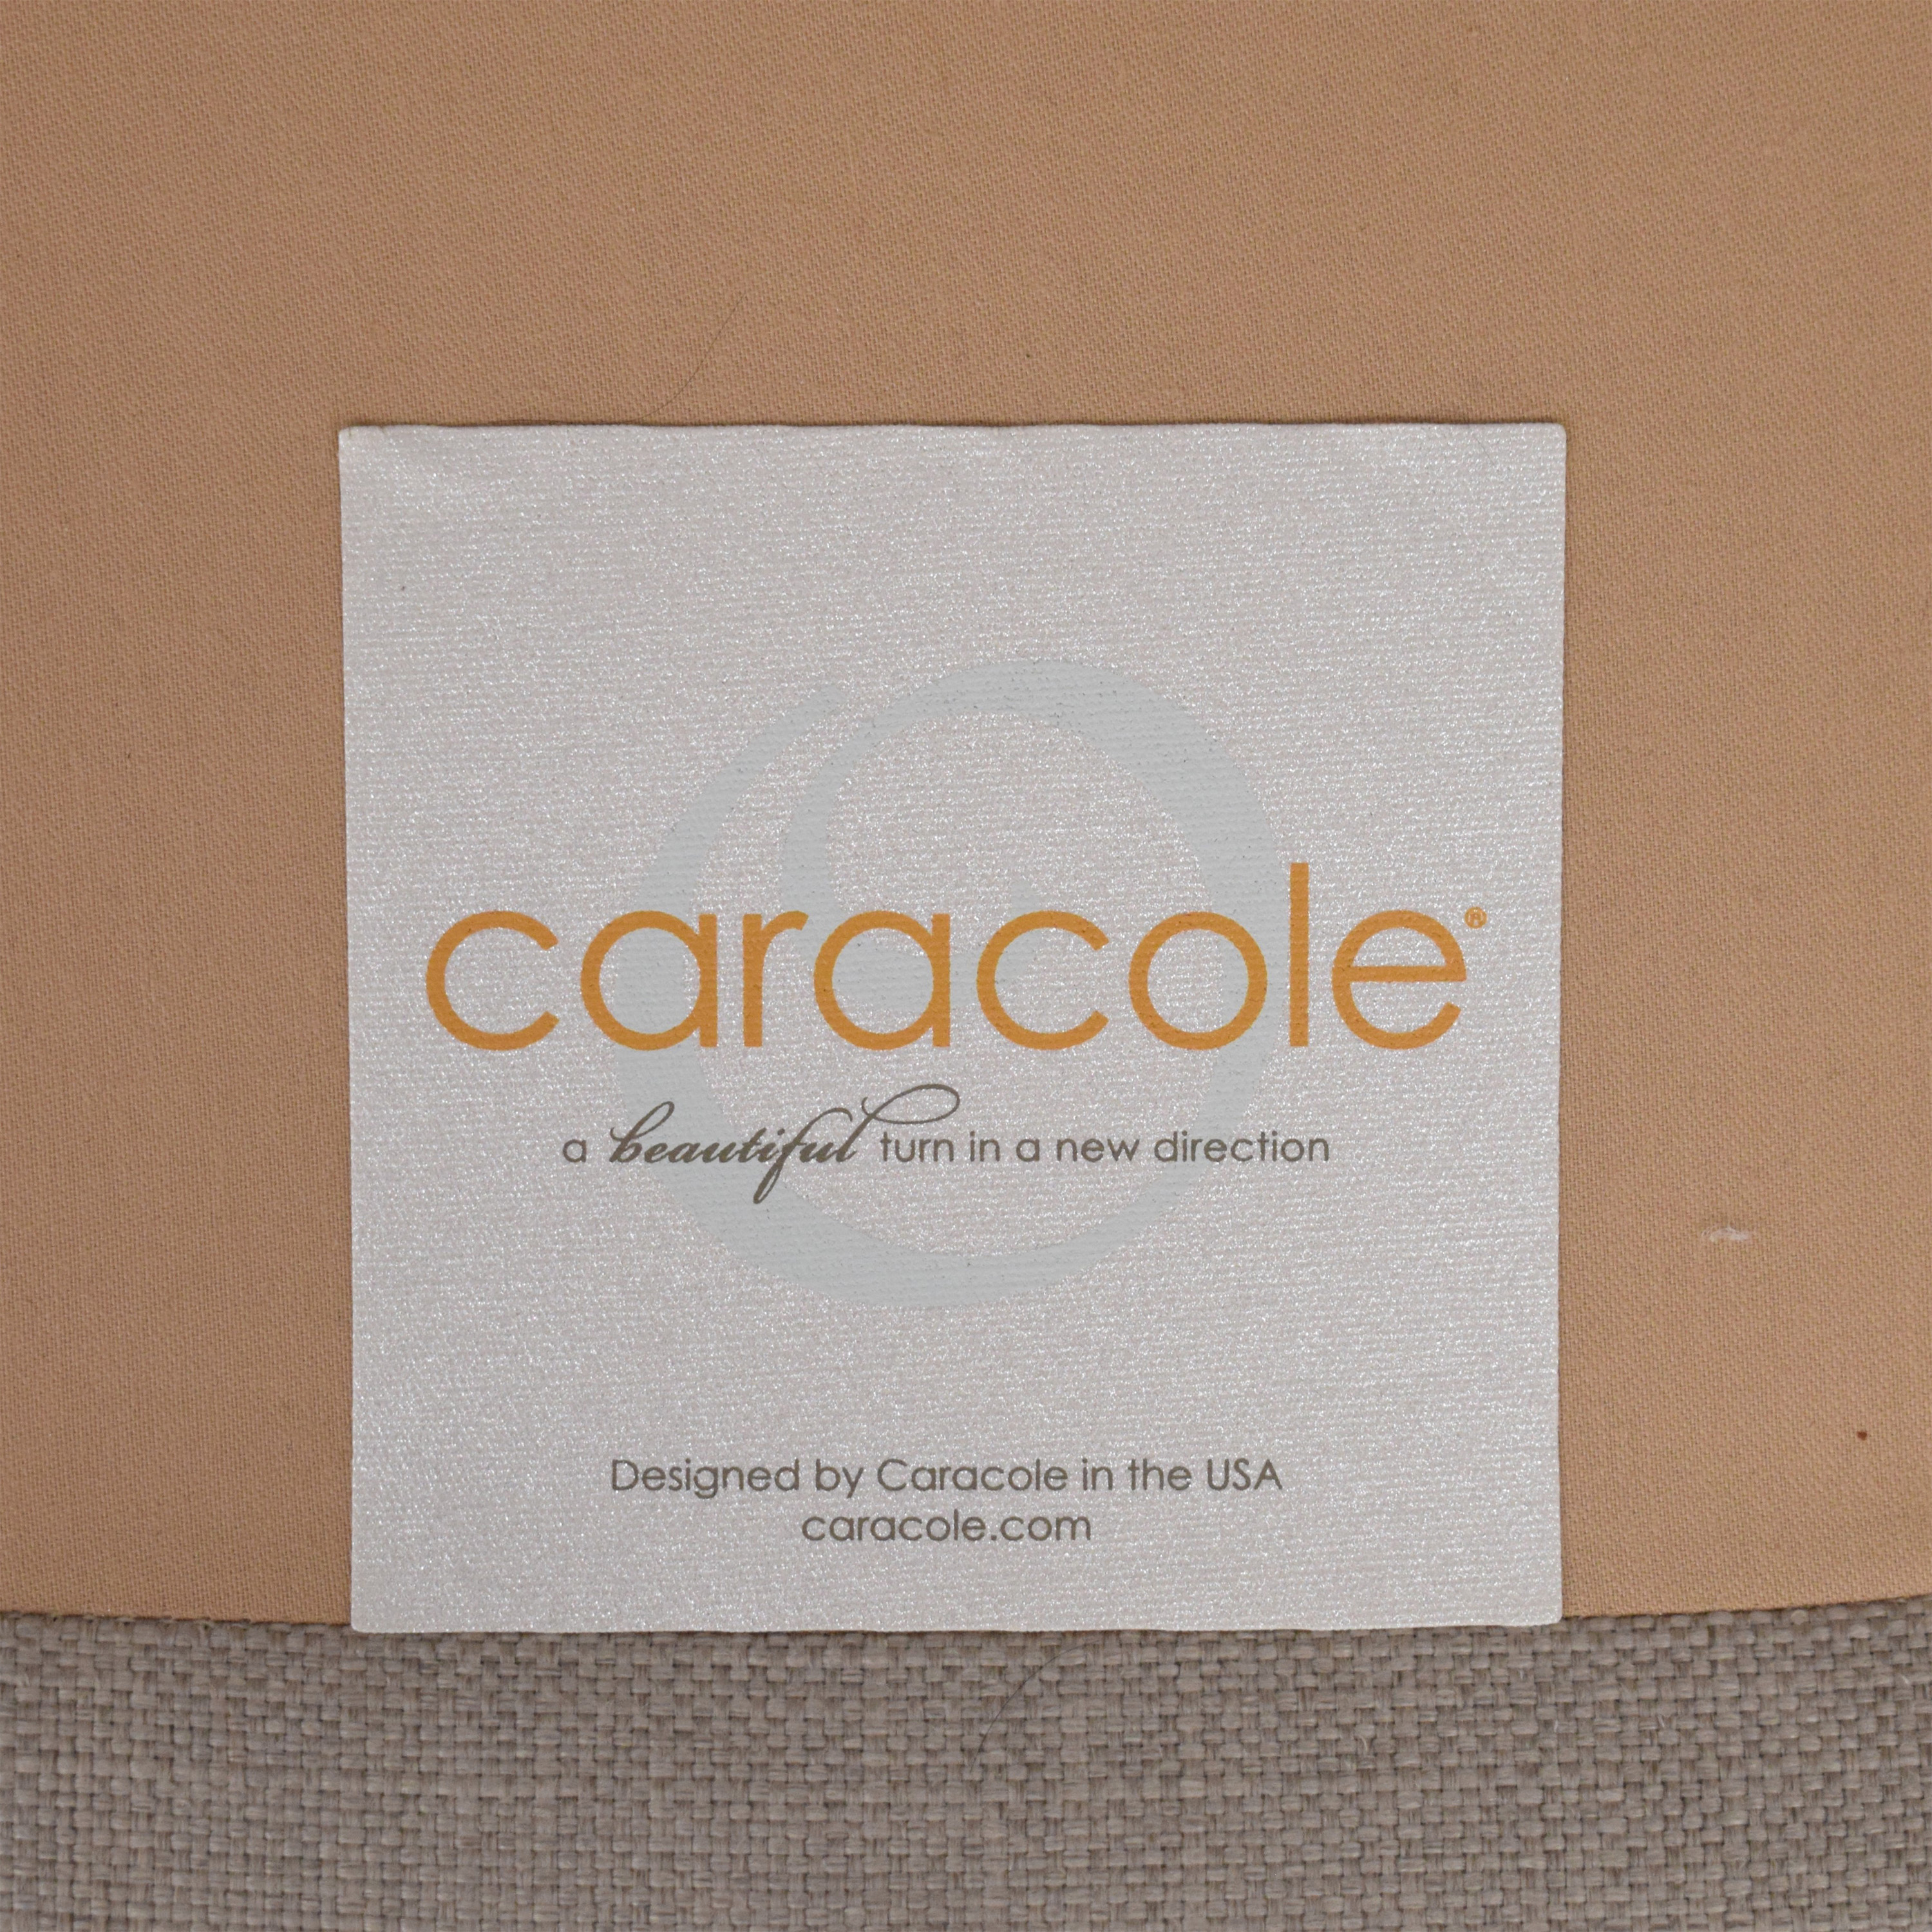 Caracole Off The Cuff Arm Chair / Chairs